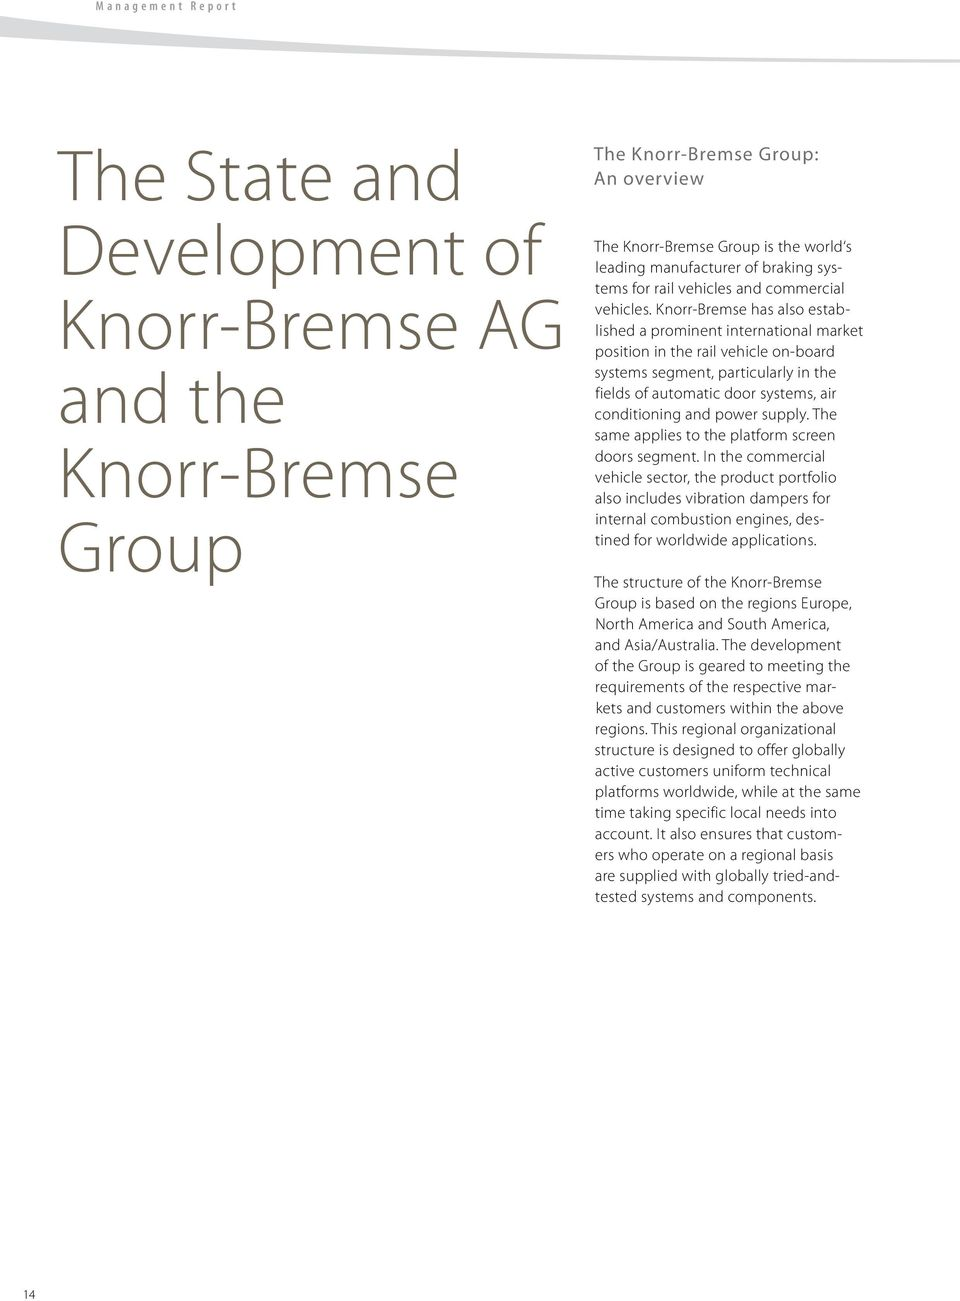 Knorr-Bremse has also established a prominent international market position in the rail vehicle on-board systems segment, particularly in the fields of automatic door systems, air conditioning and